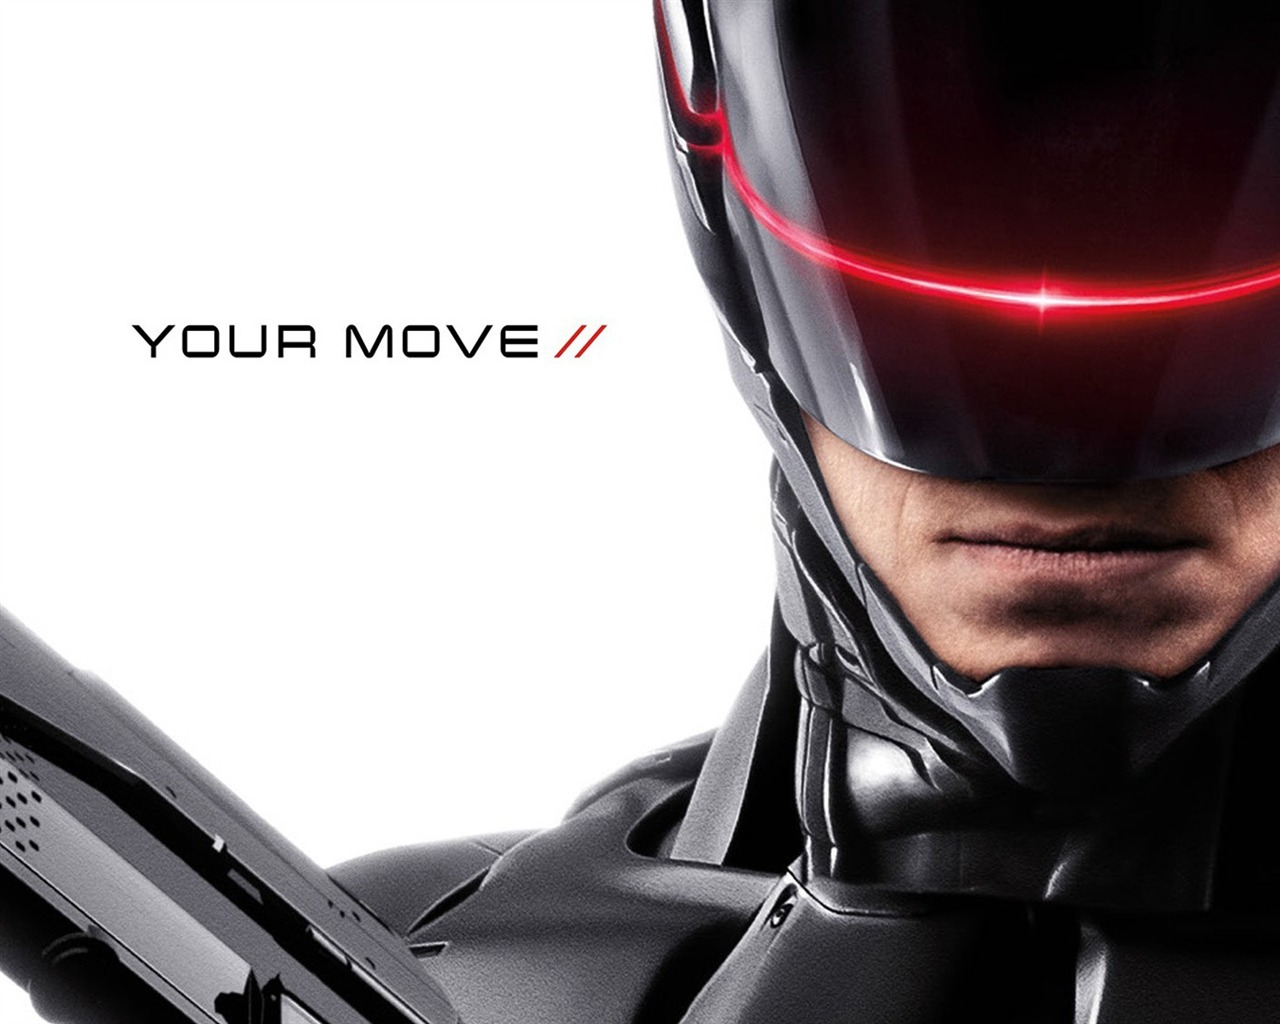 robocop 2014 movie-high quality wallpaper preview | 10wallpaper